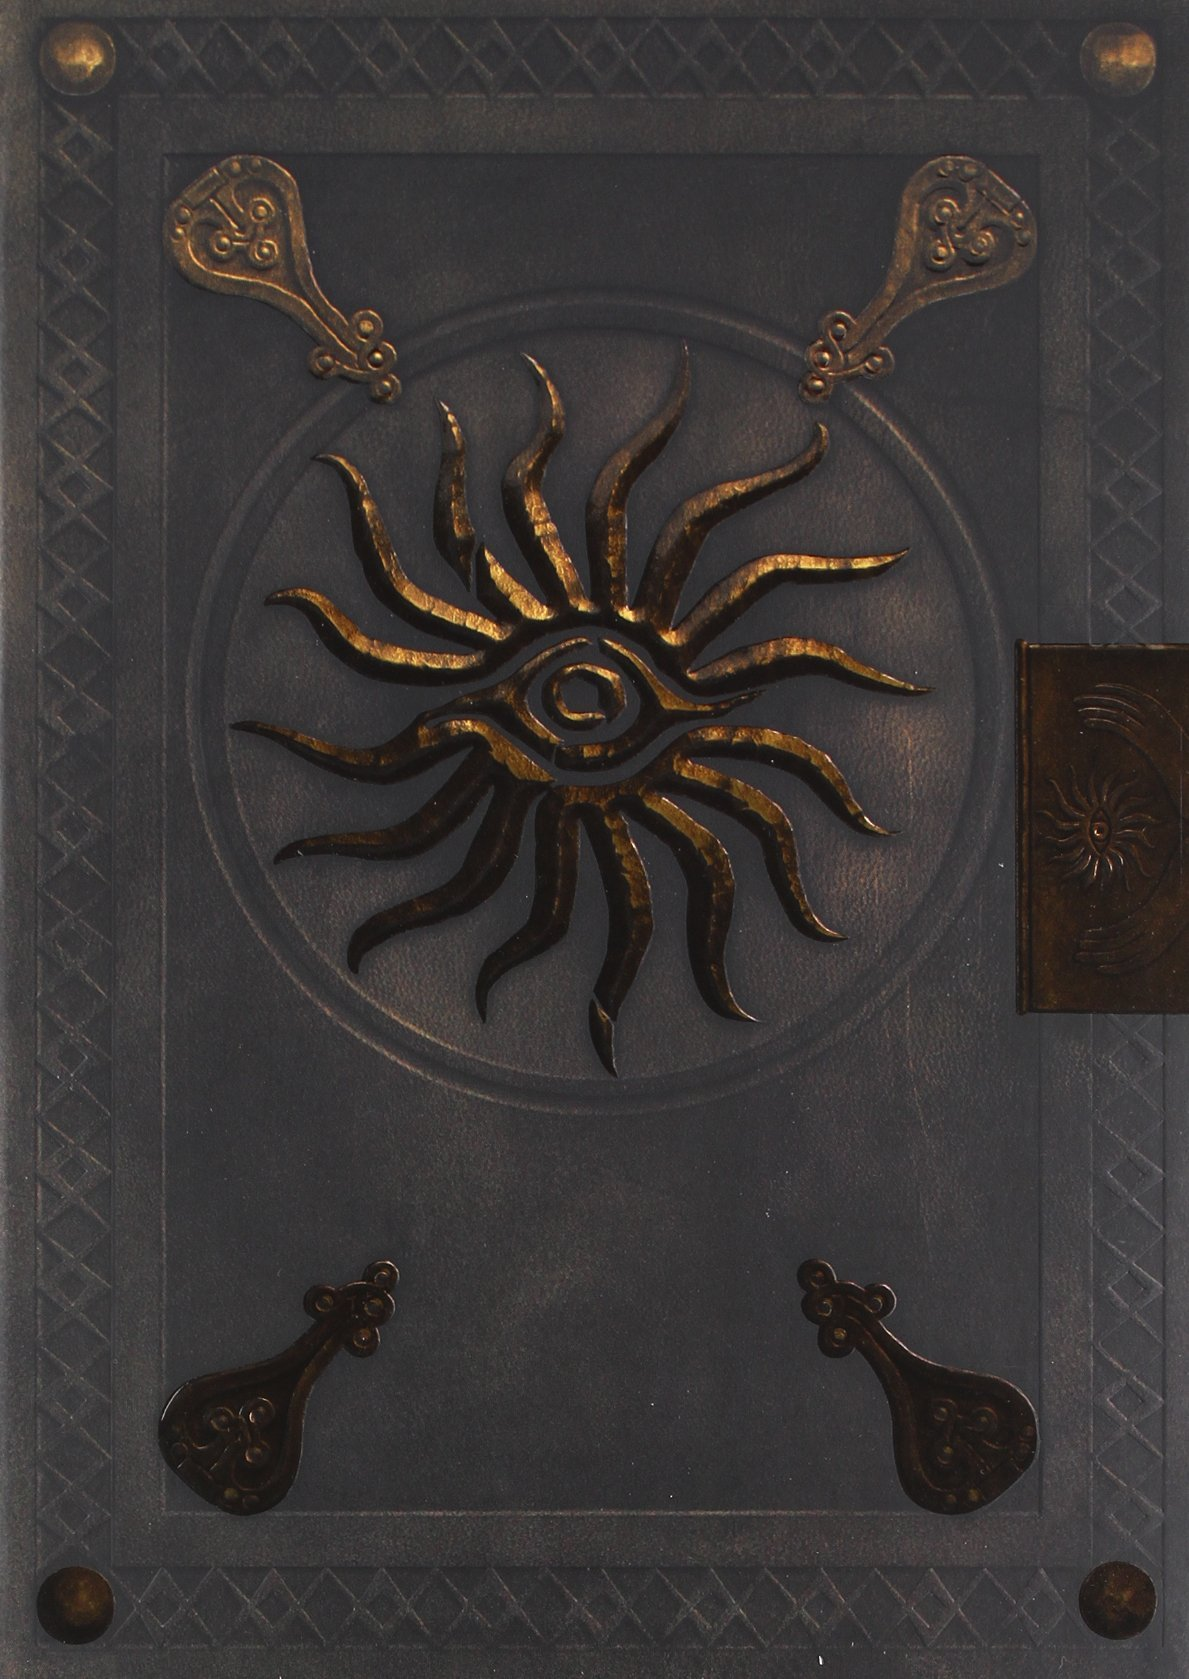 Dragon Age II - The Complete Official Guide - Collector's Edition